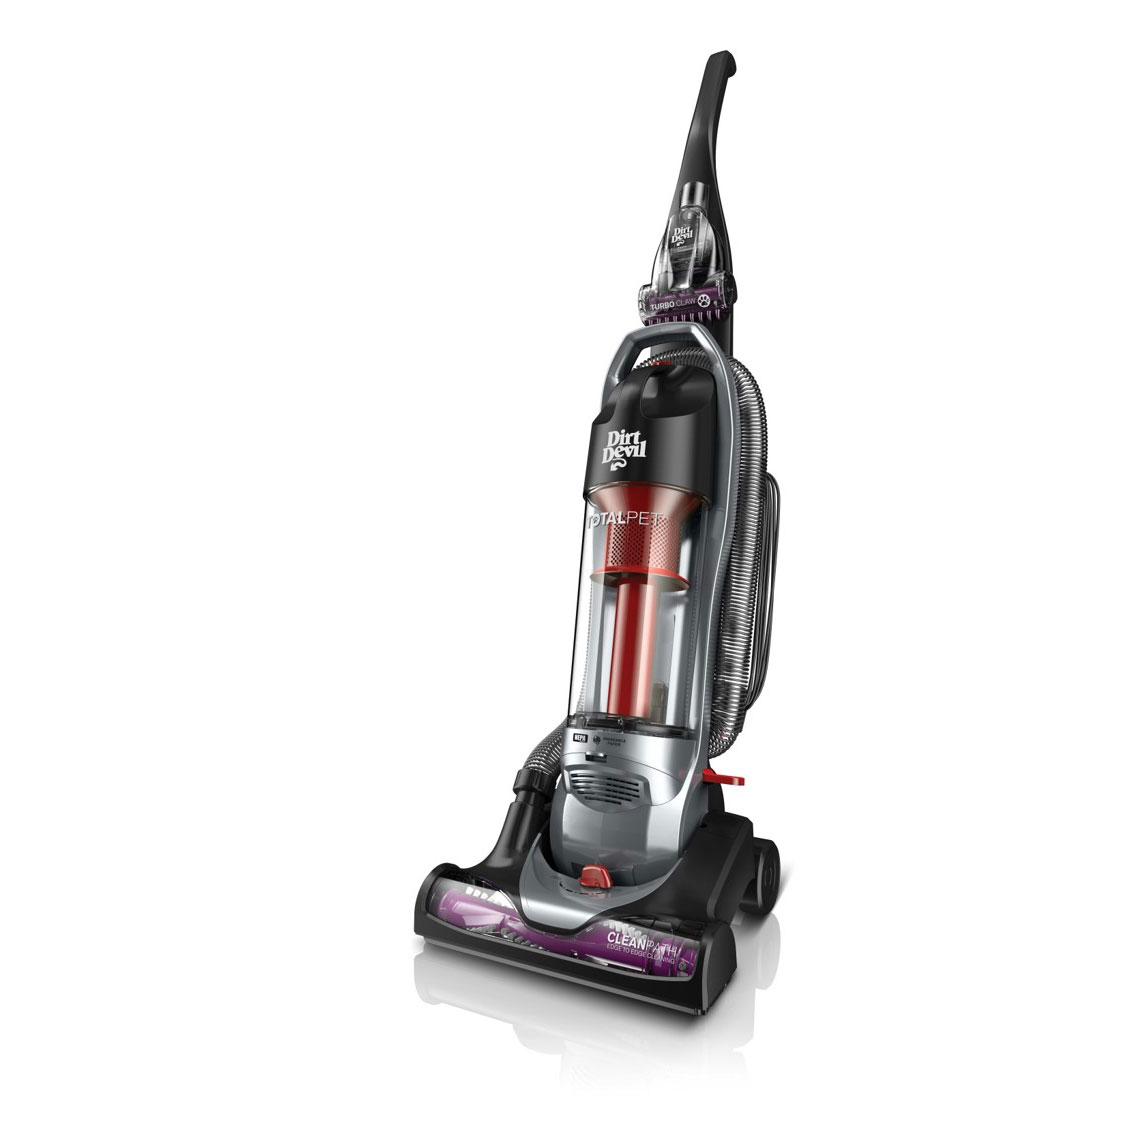 Dirt Devil Recalls More Than 150 000 Vacuums Due To